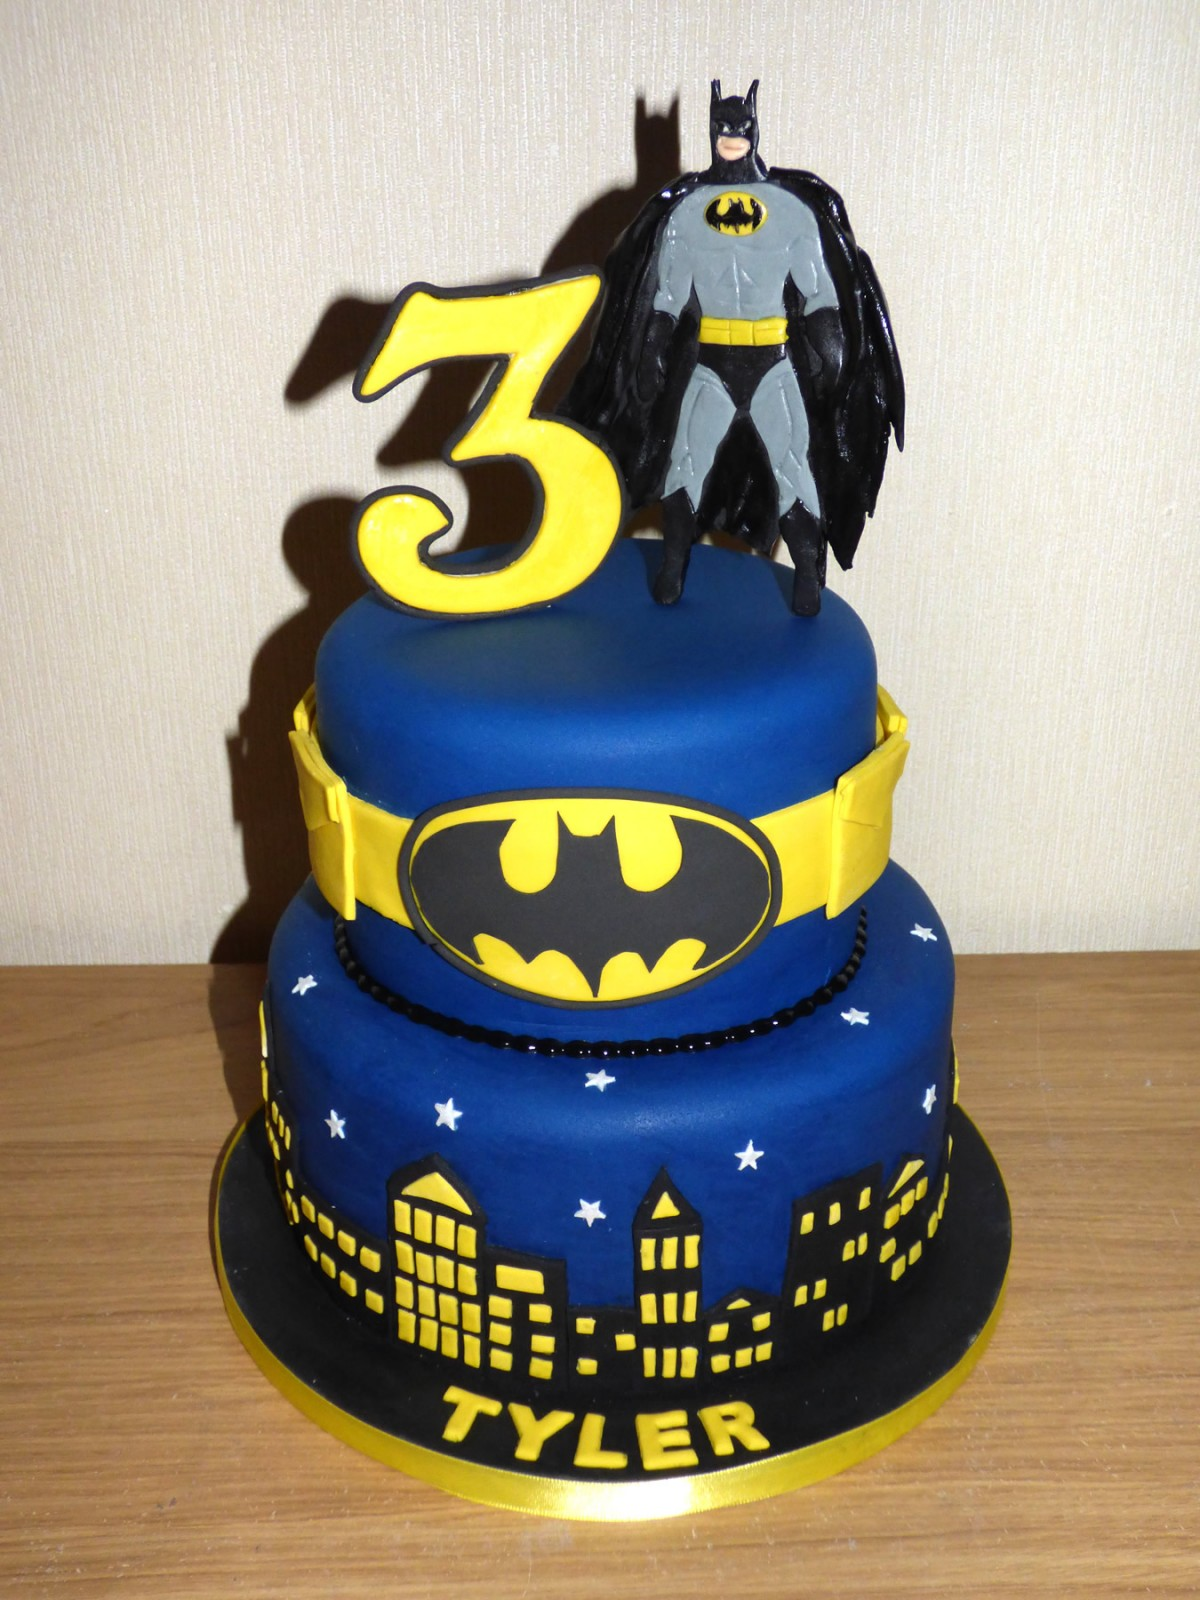 2 Tier Batman Themed Birthday Cake Susies Cakes